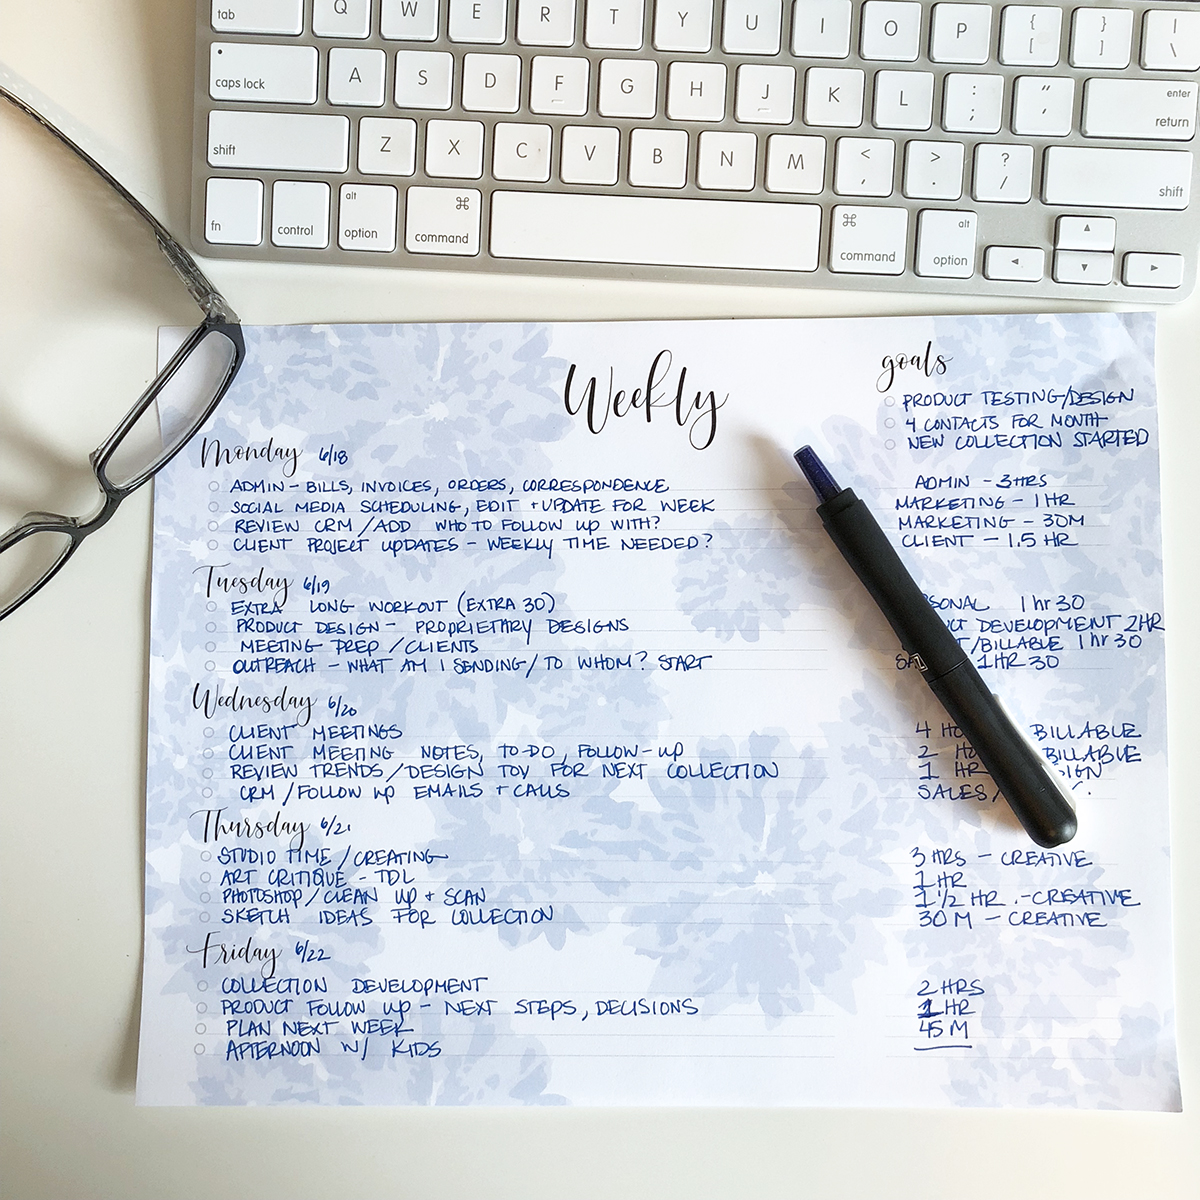 Our Weekly Planner Pad in action